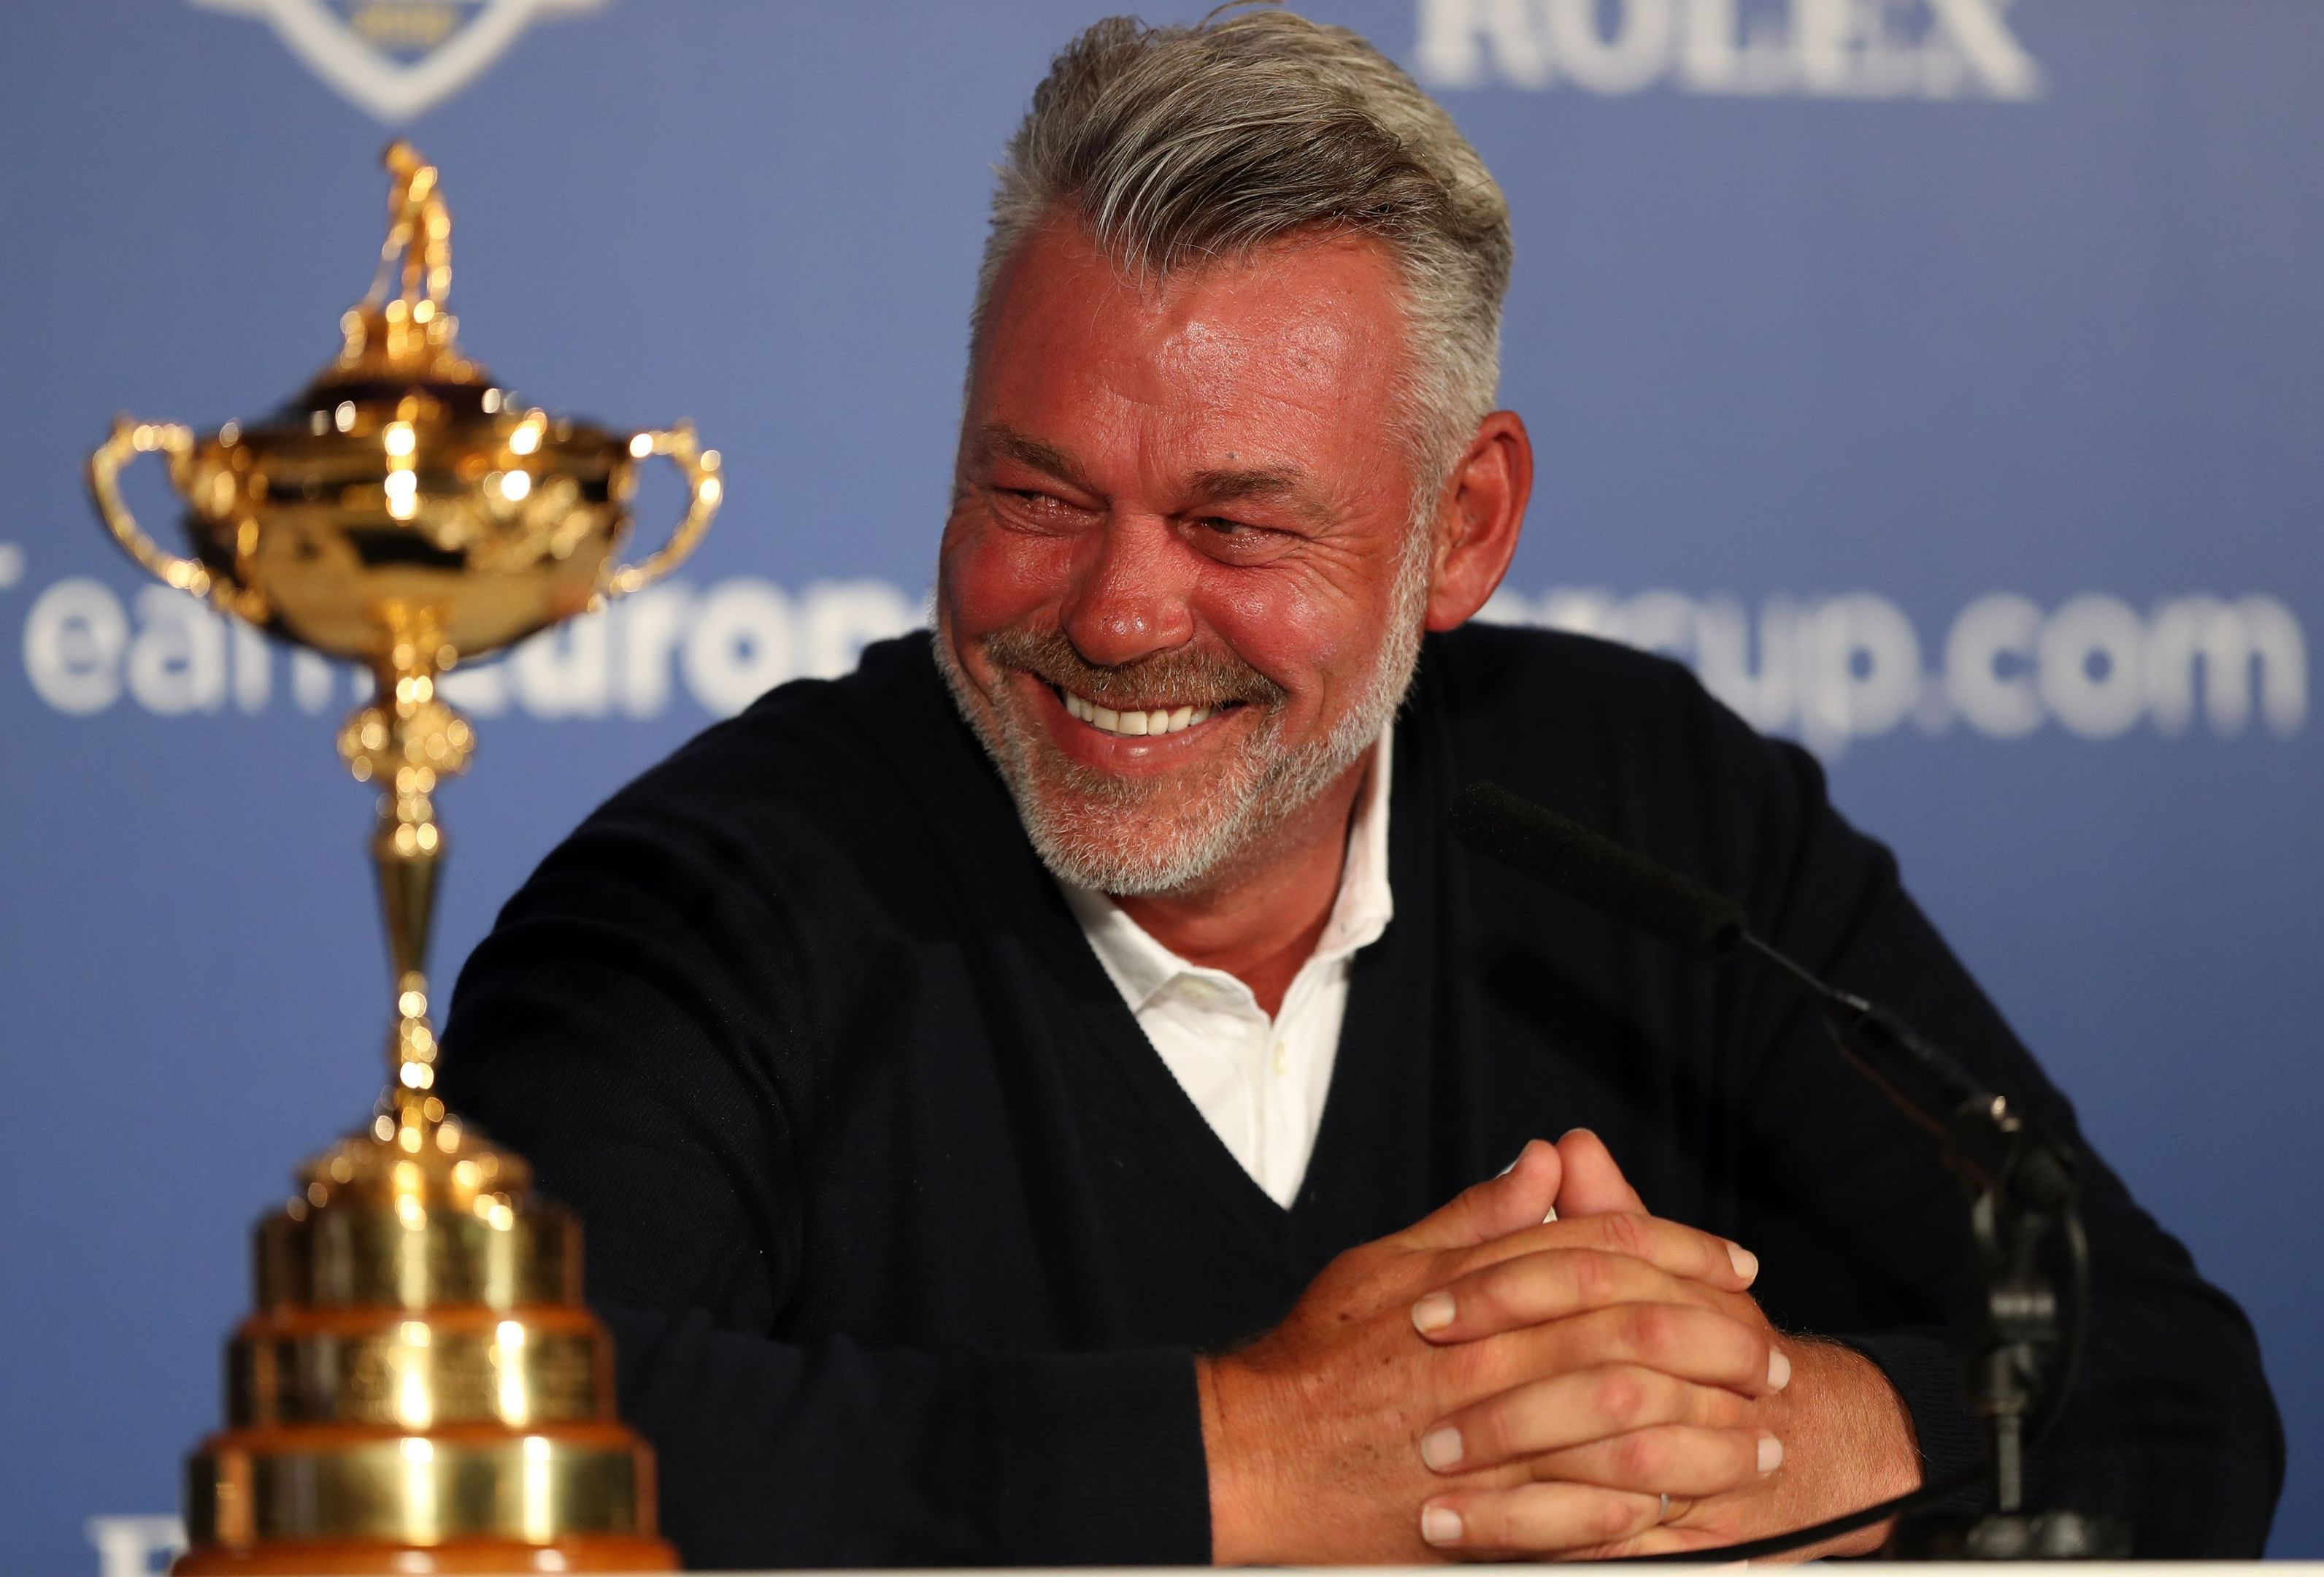 Darren Clarke has good reason to be smiling.